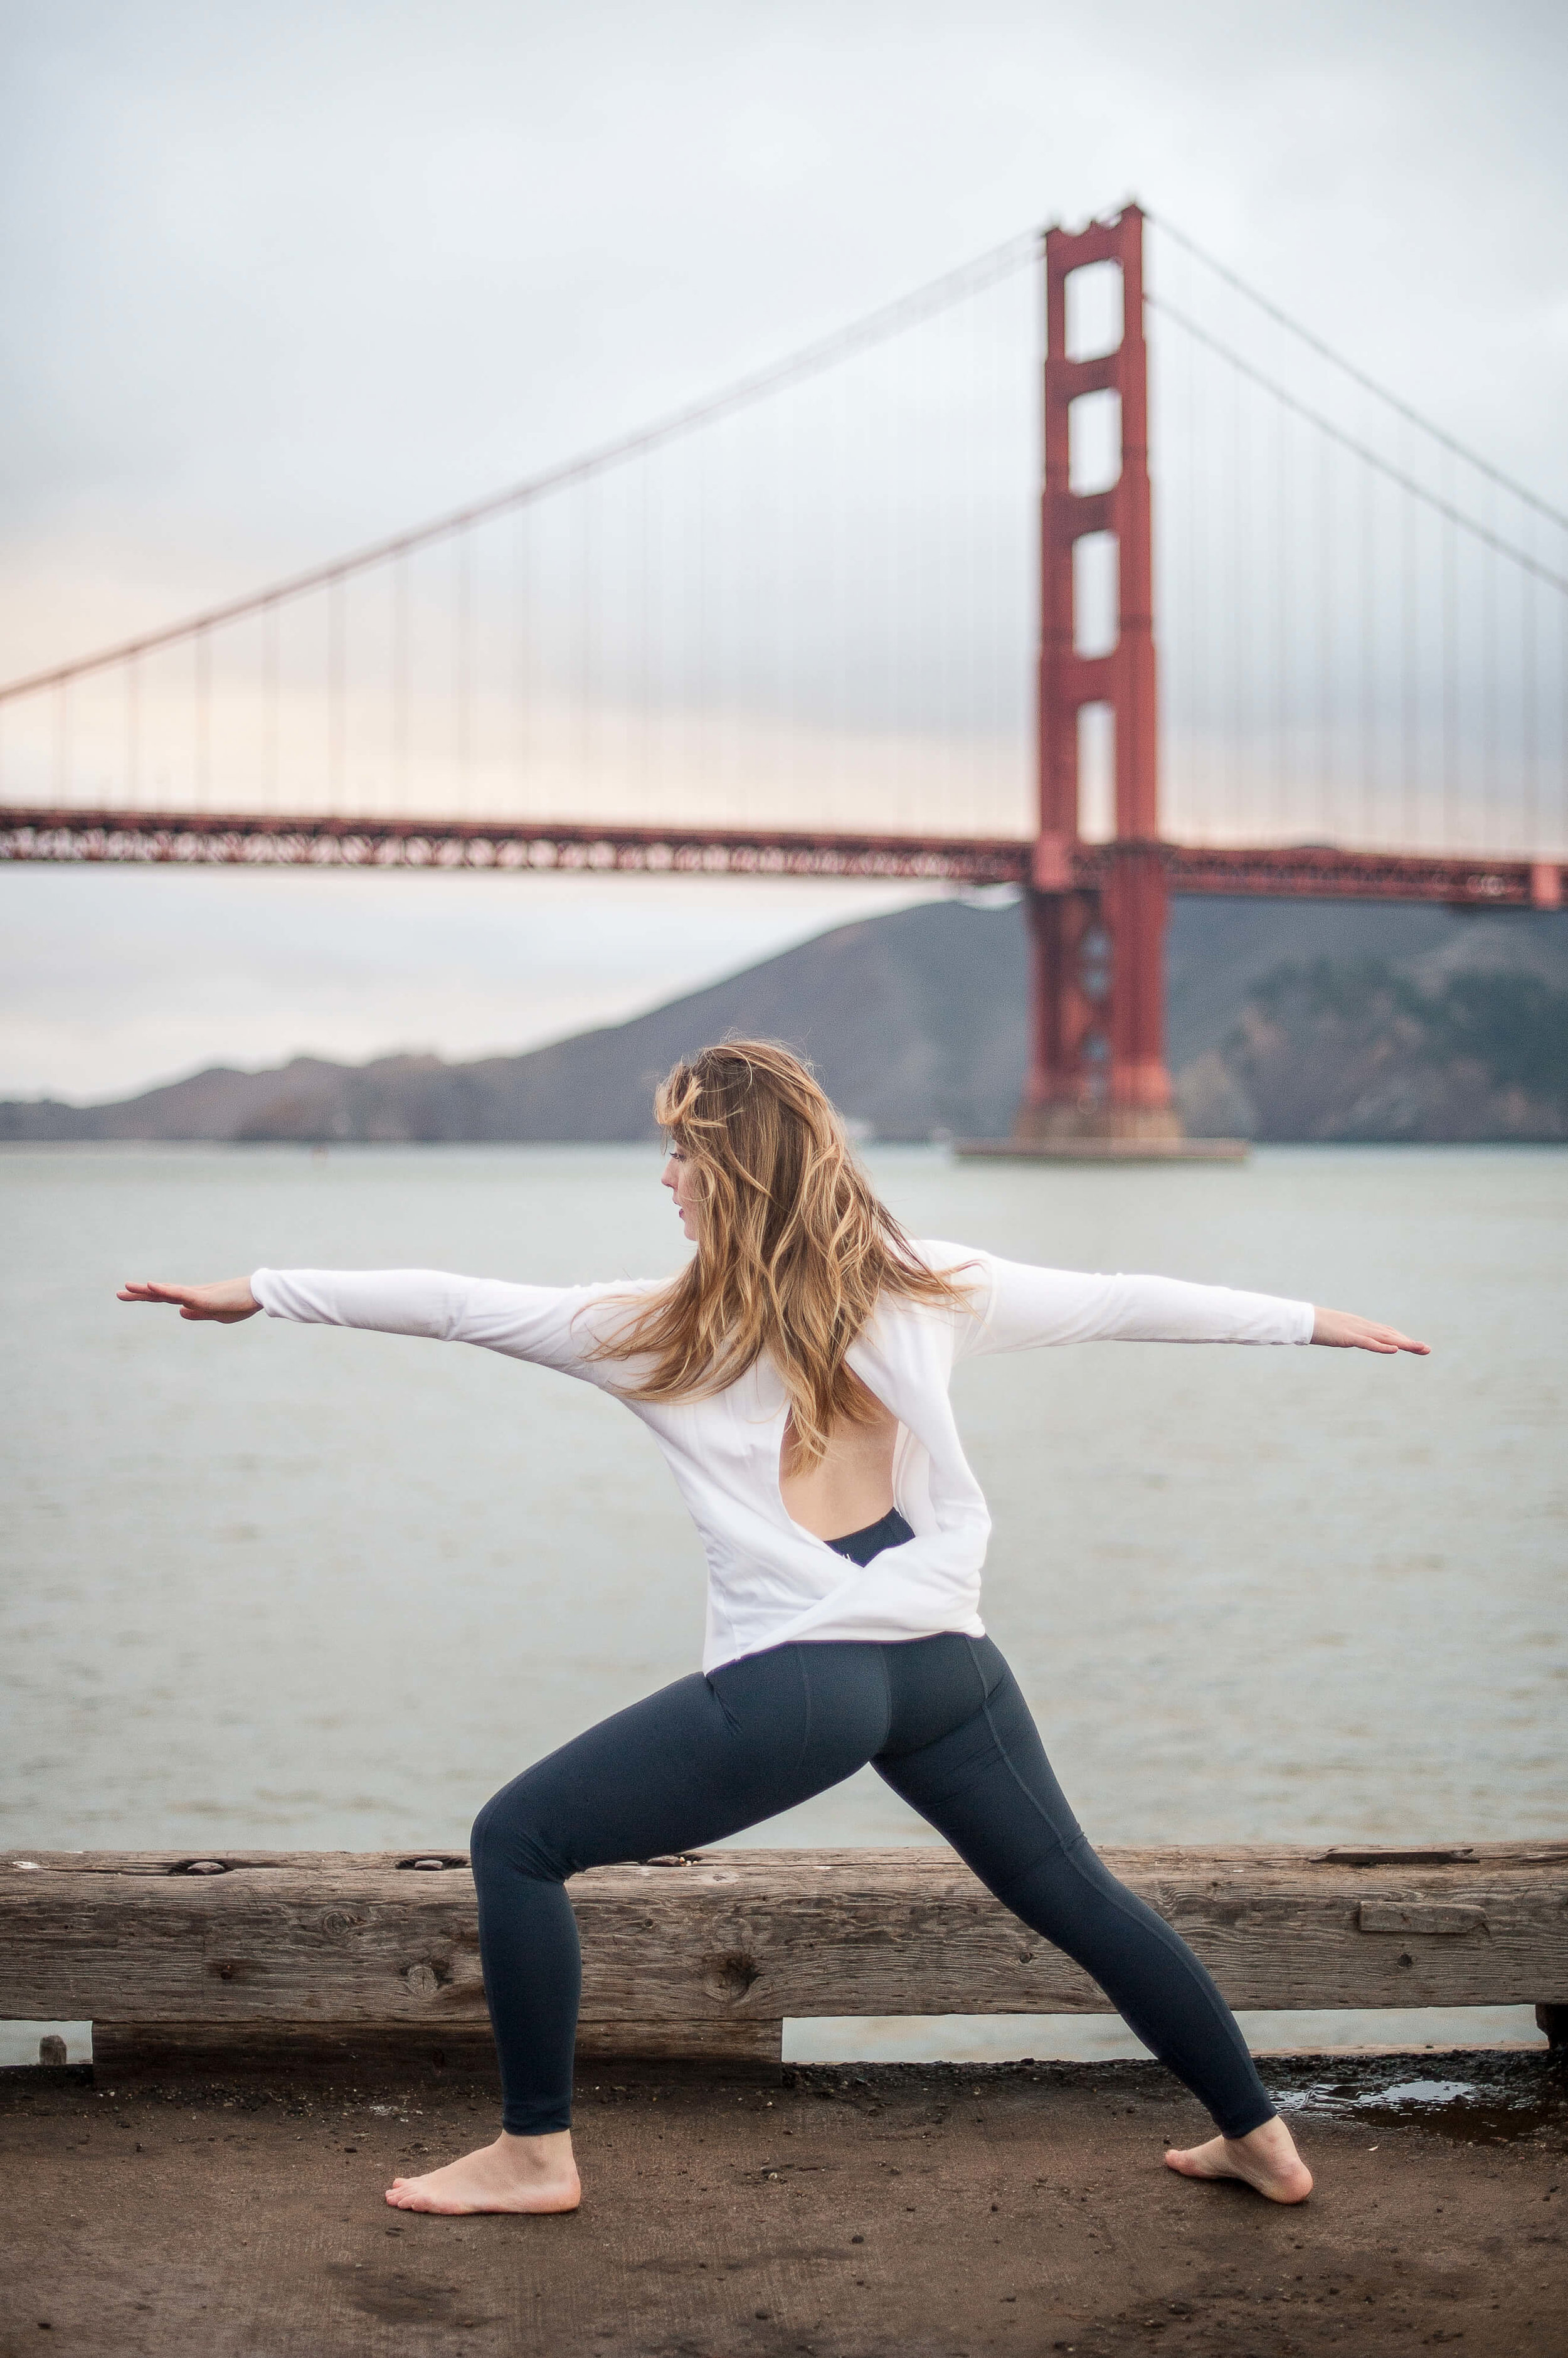 Haven Found - My favorite ambassadorship. ADL & Haven Collective shot three yoga styles on a barge under the Golden Gate Bridge in the middle of winter.